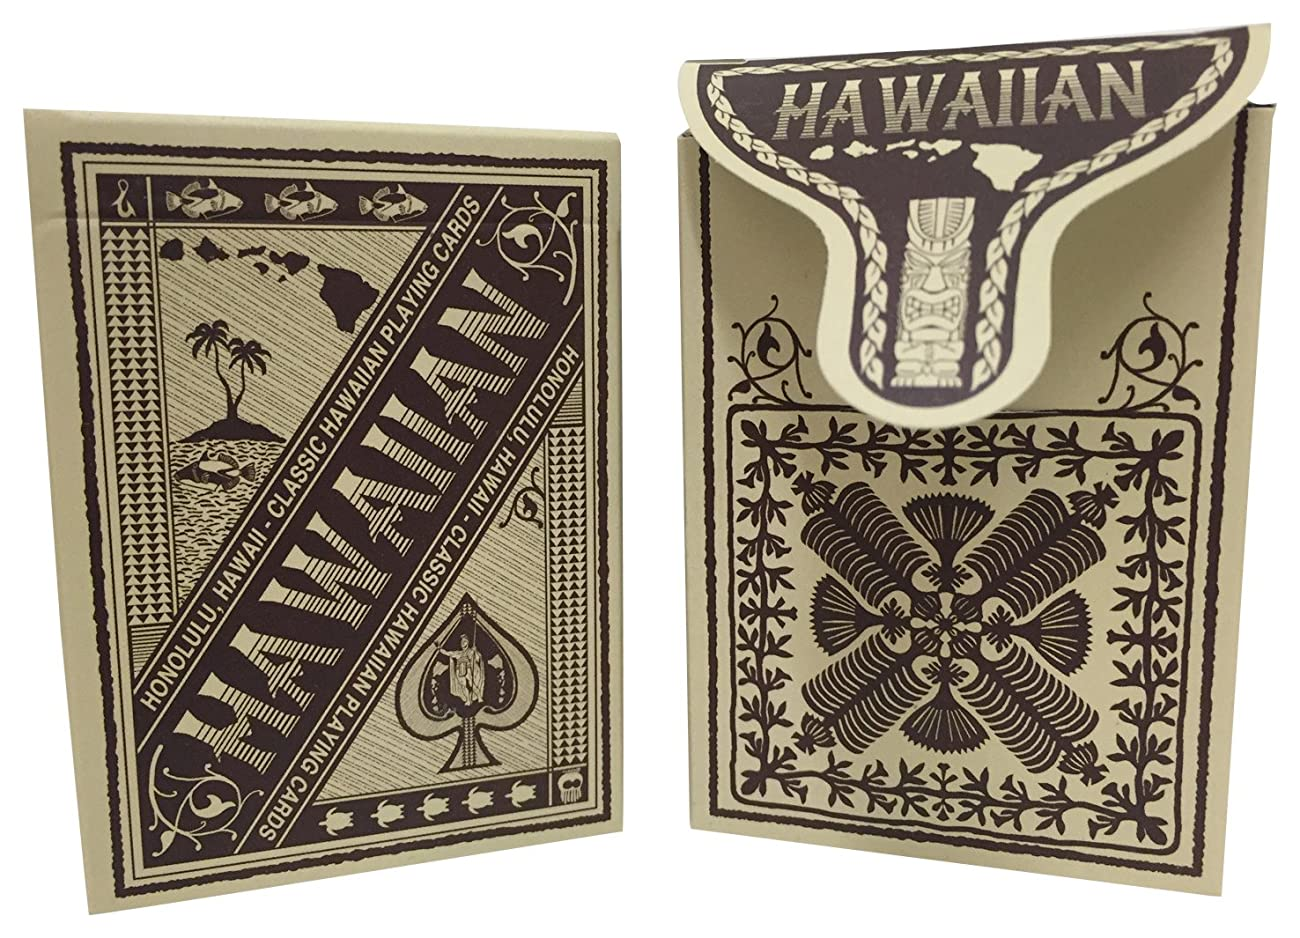 Hawaiian Limited Playing Cards 0